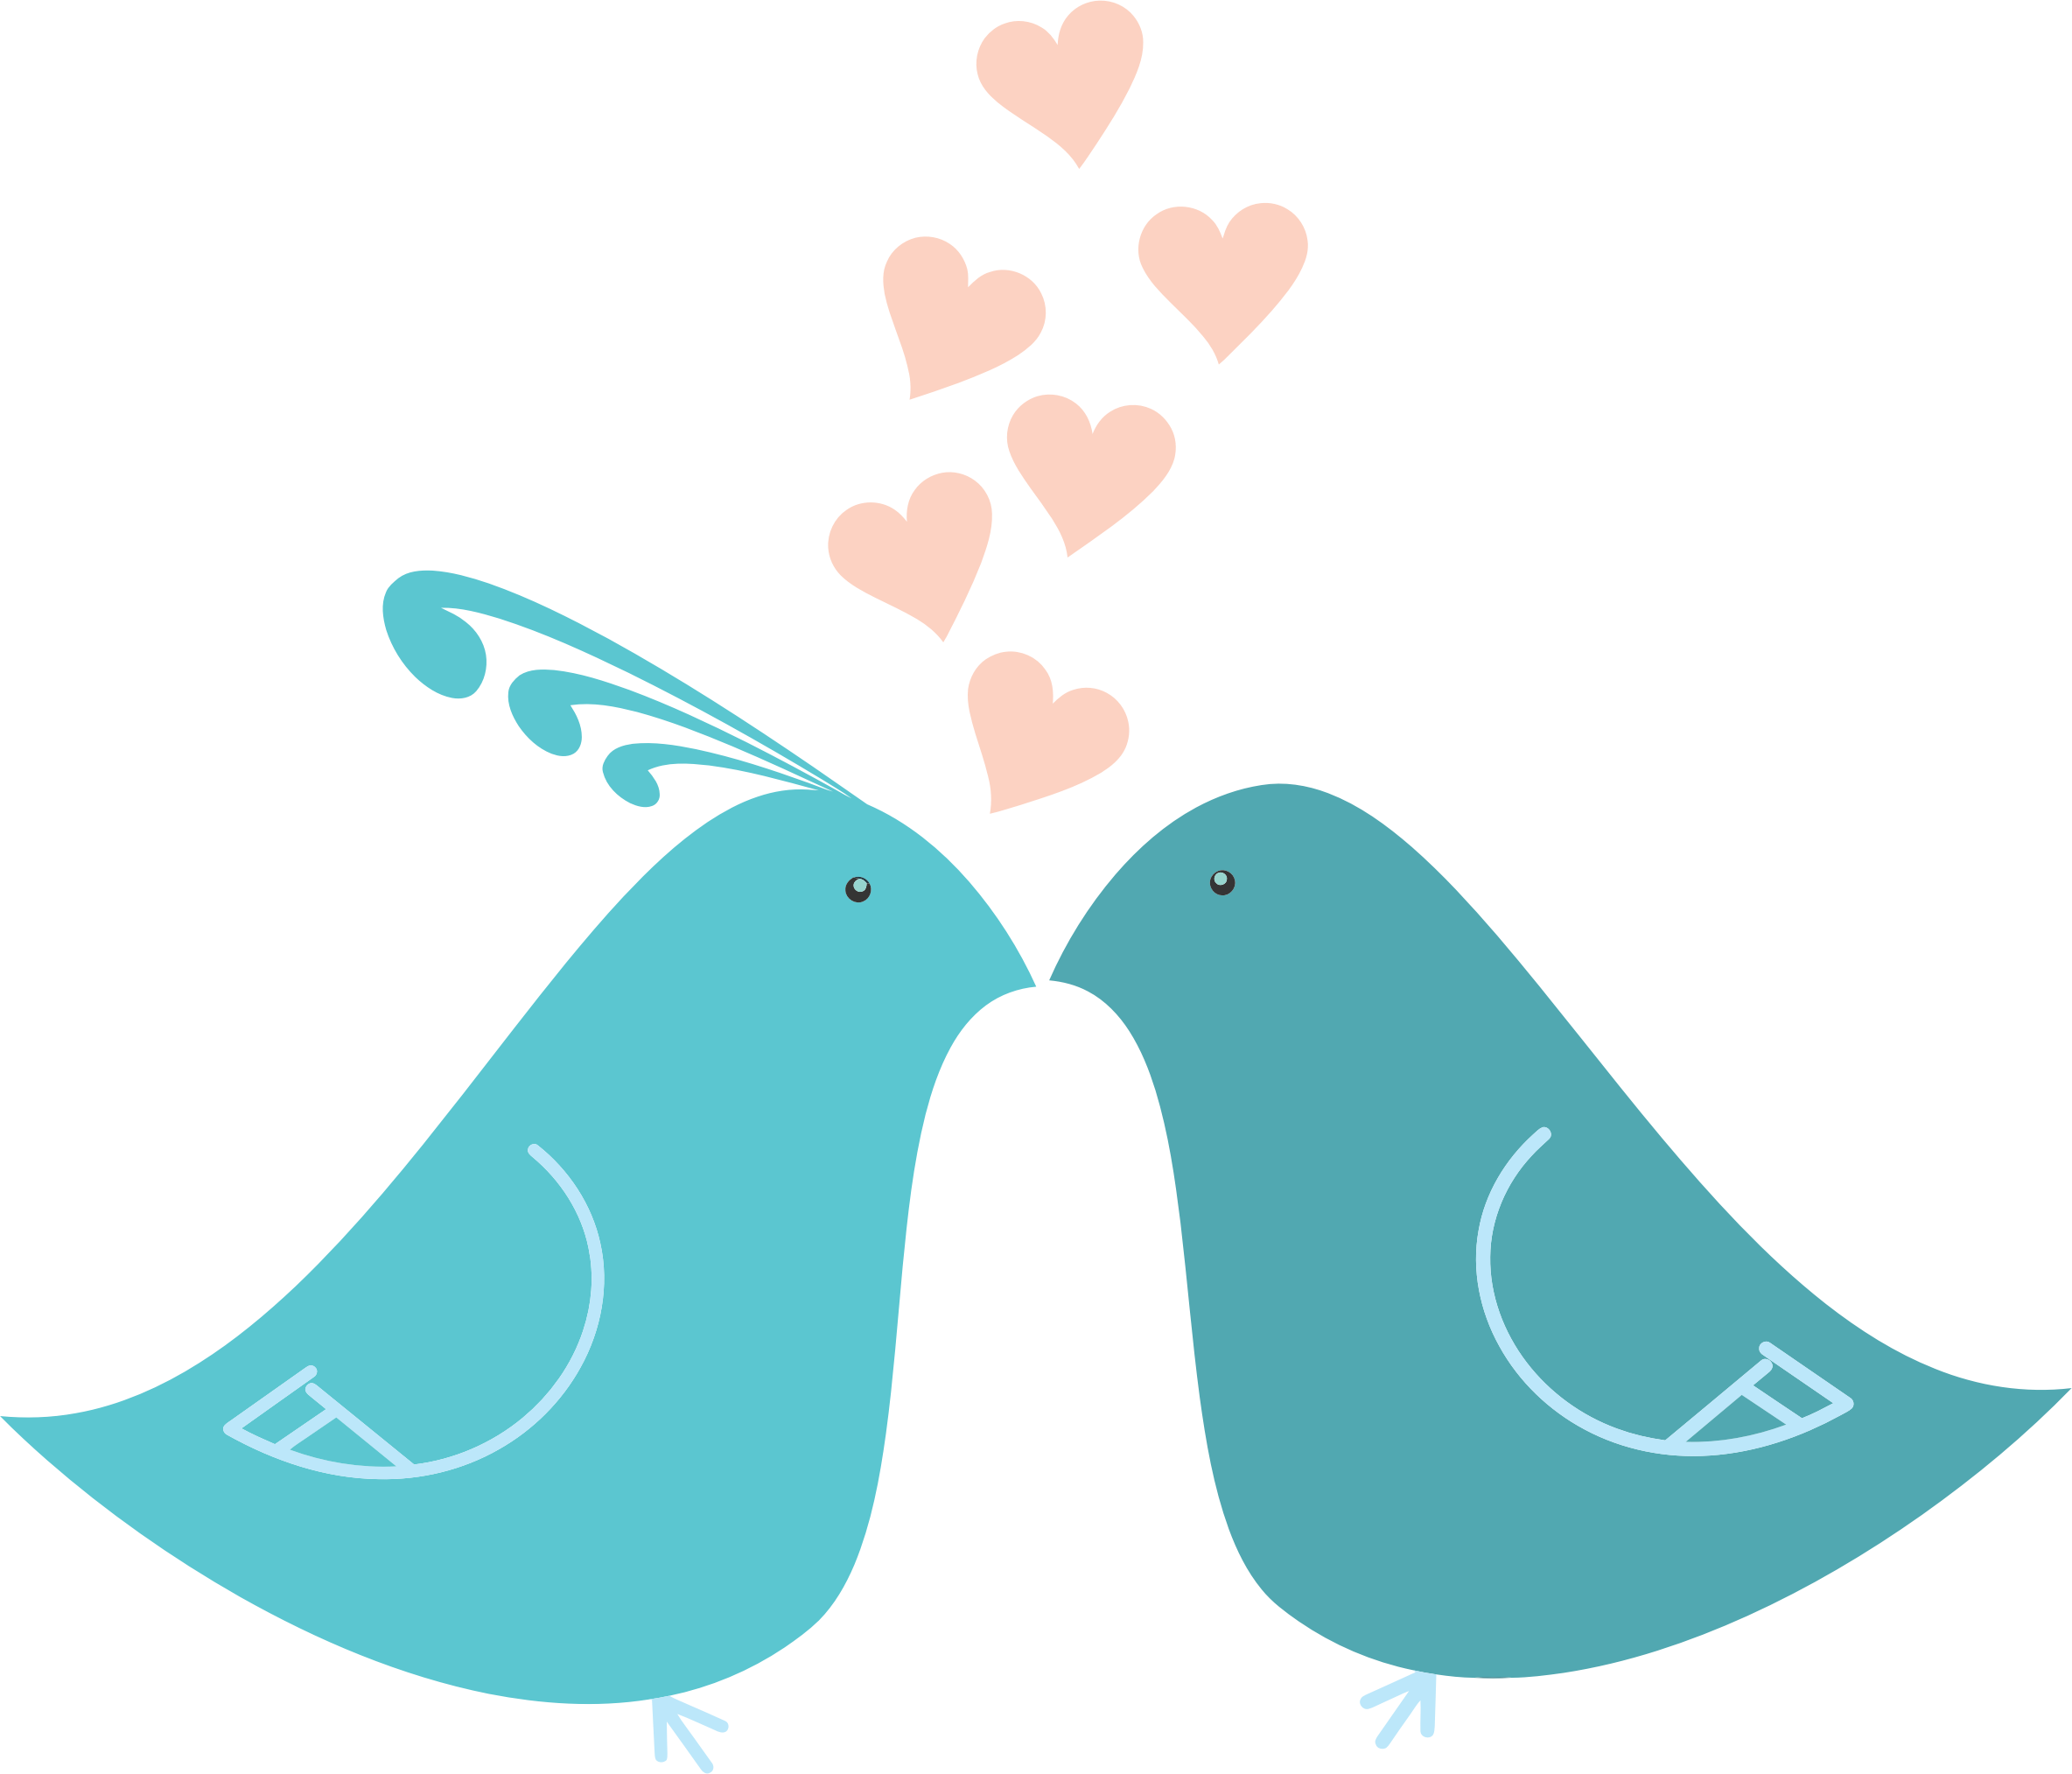 Love birds png. Transparent images all clipart